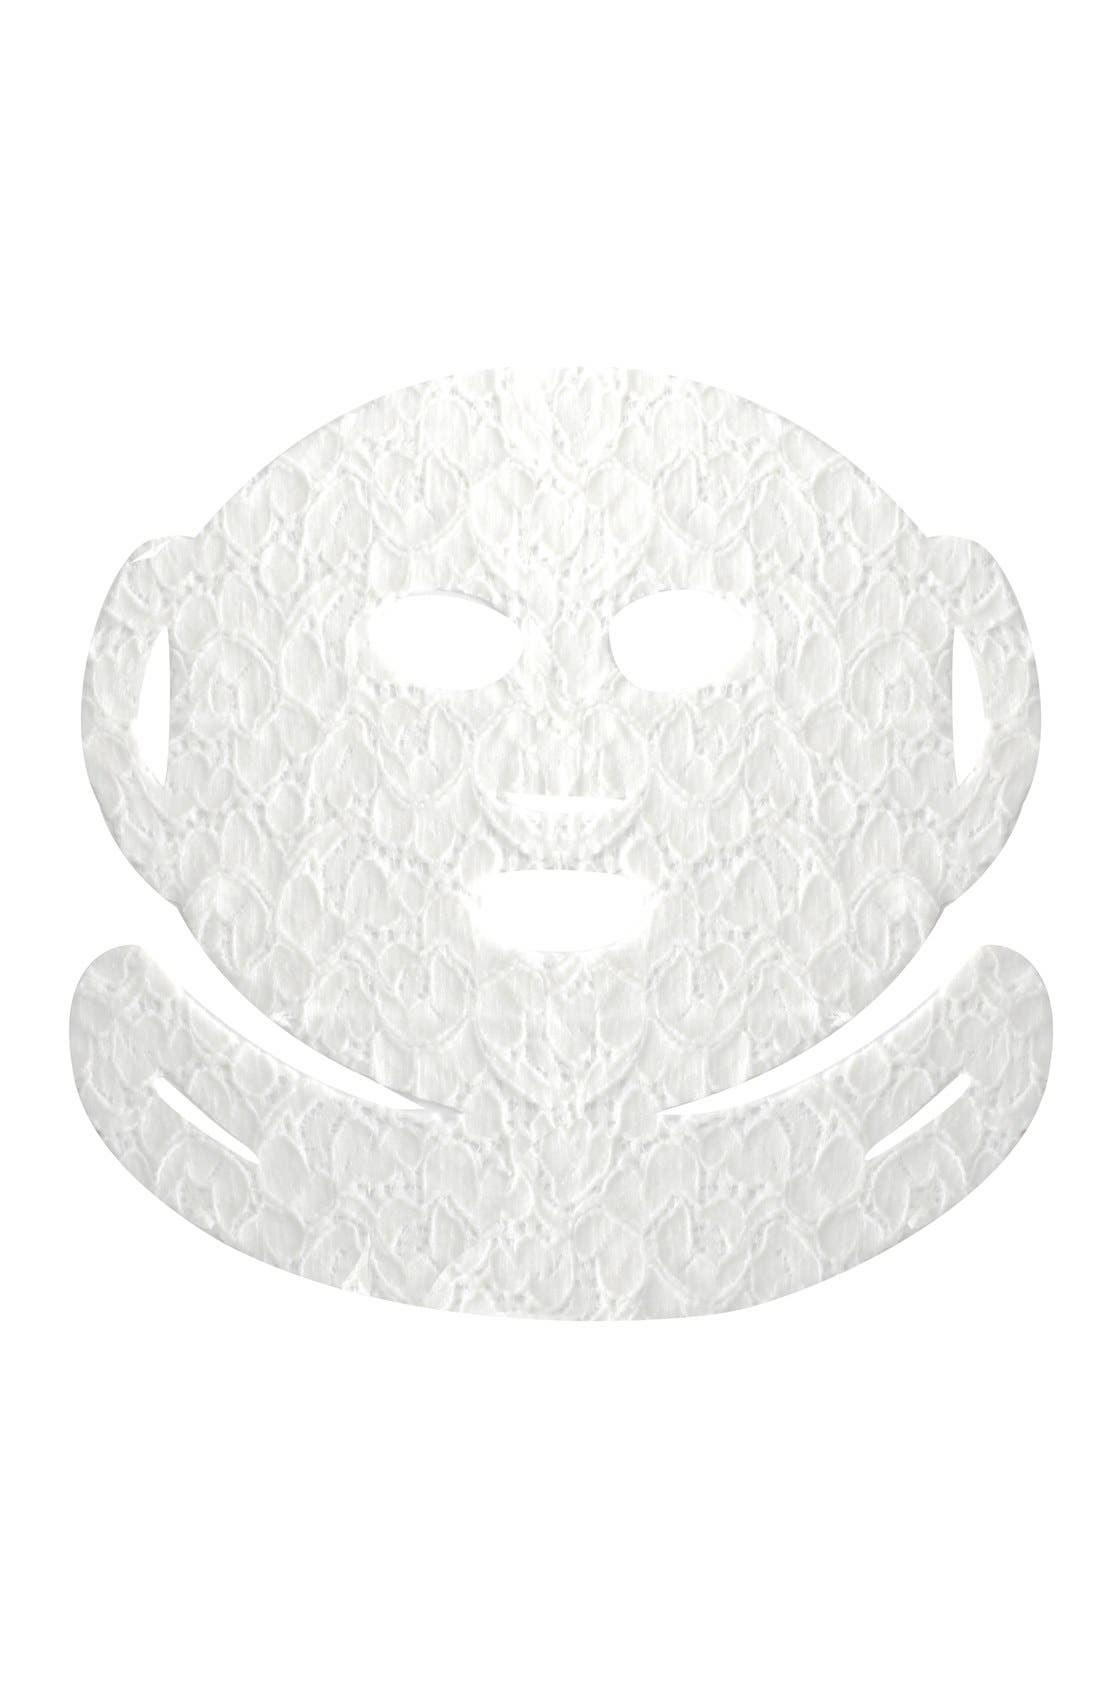 Lace Your Face Healing Yogurt Compression Facial Mask,                             Alternate thumbnail 3, color,                             NONE